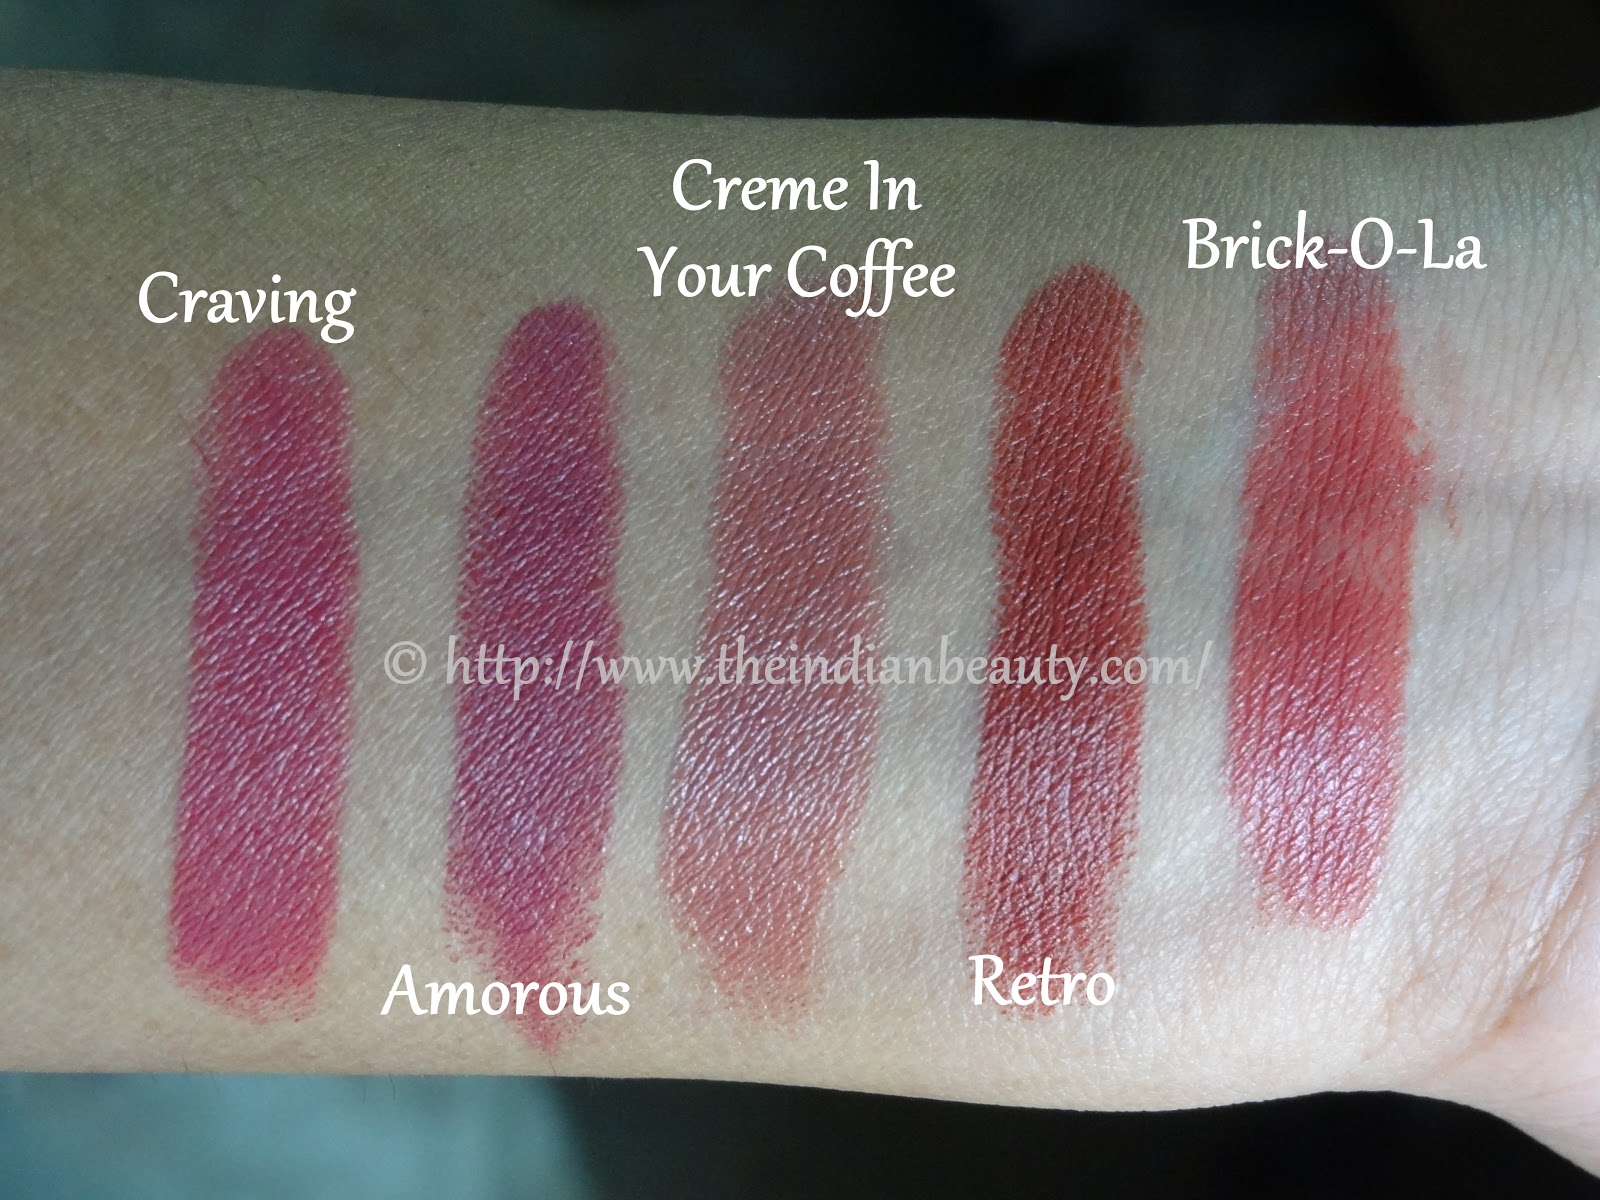 5 MAC lipsticks swatches and my recommendations for dusky